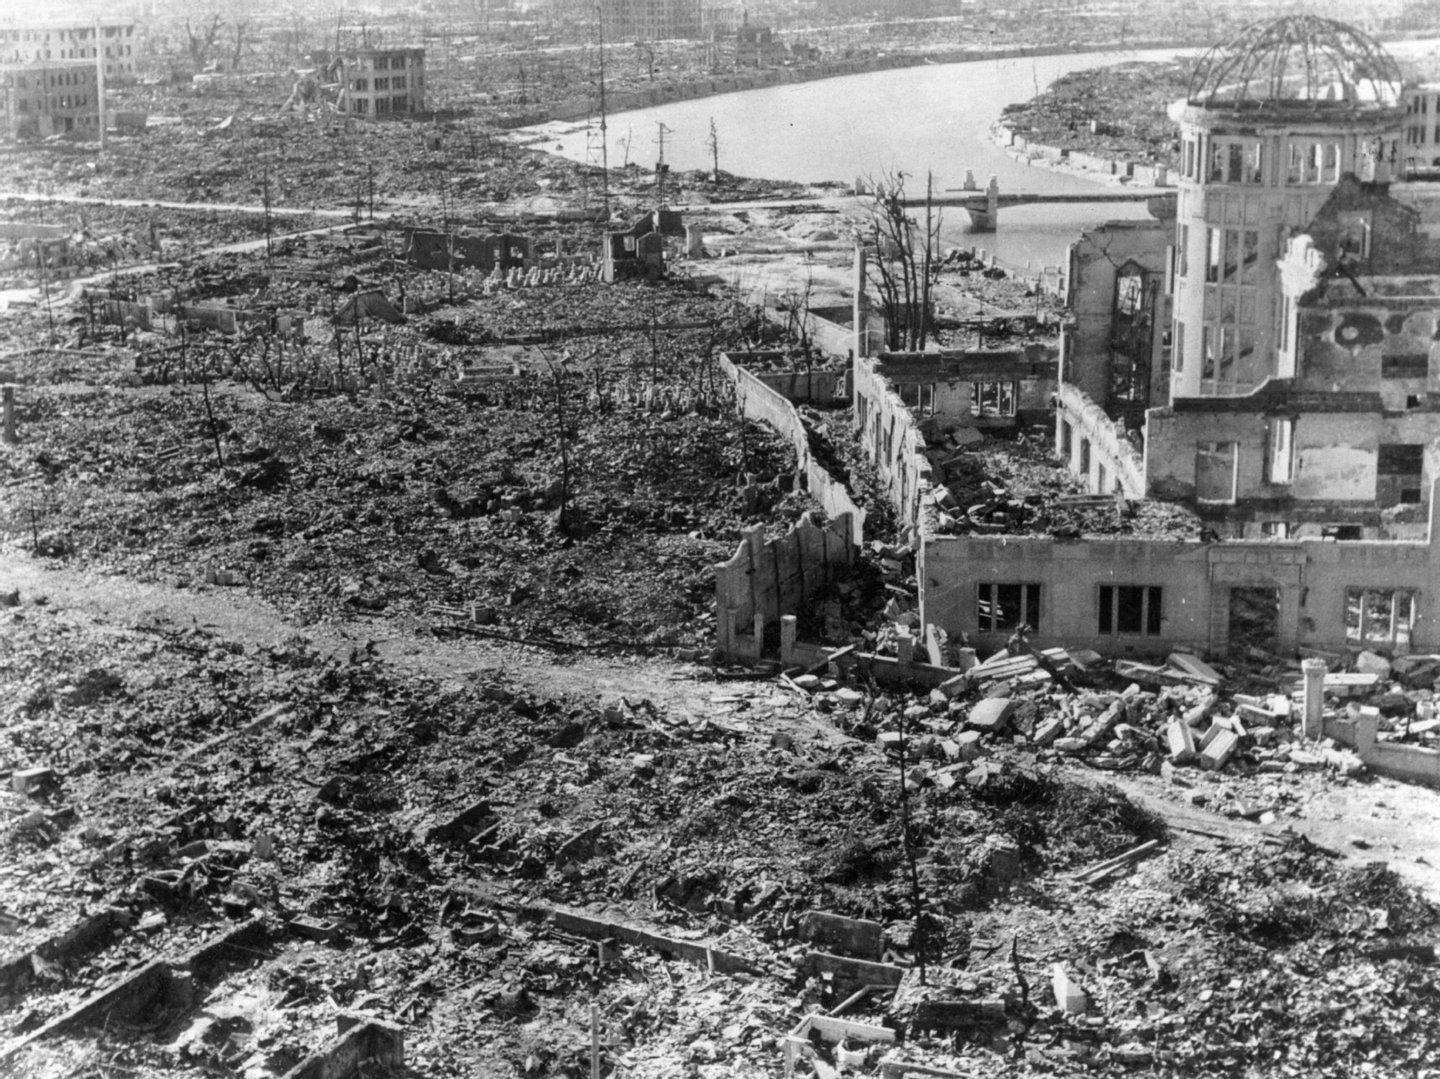 Devastation at Hiroshima, after the atomic bomb was dropped. The building on the right was preserved as the Hiroshima Peace Memorial, Atomic Bomb Dome or Genbaku Dome.(Photo by Keystone/Getty Images)